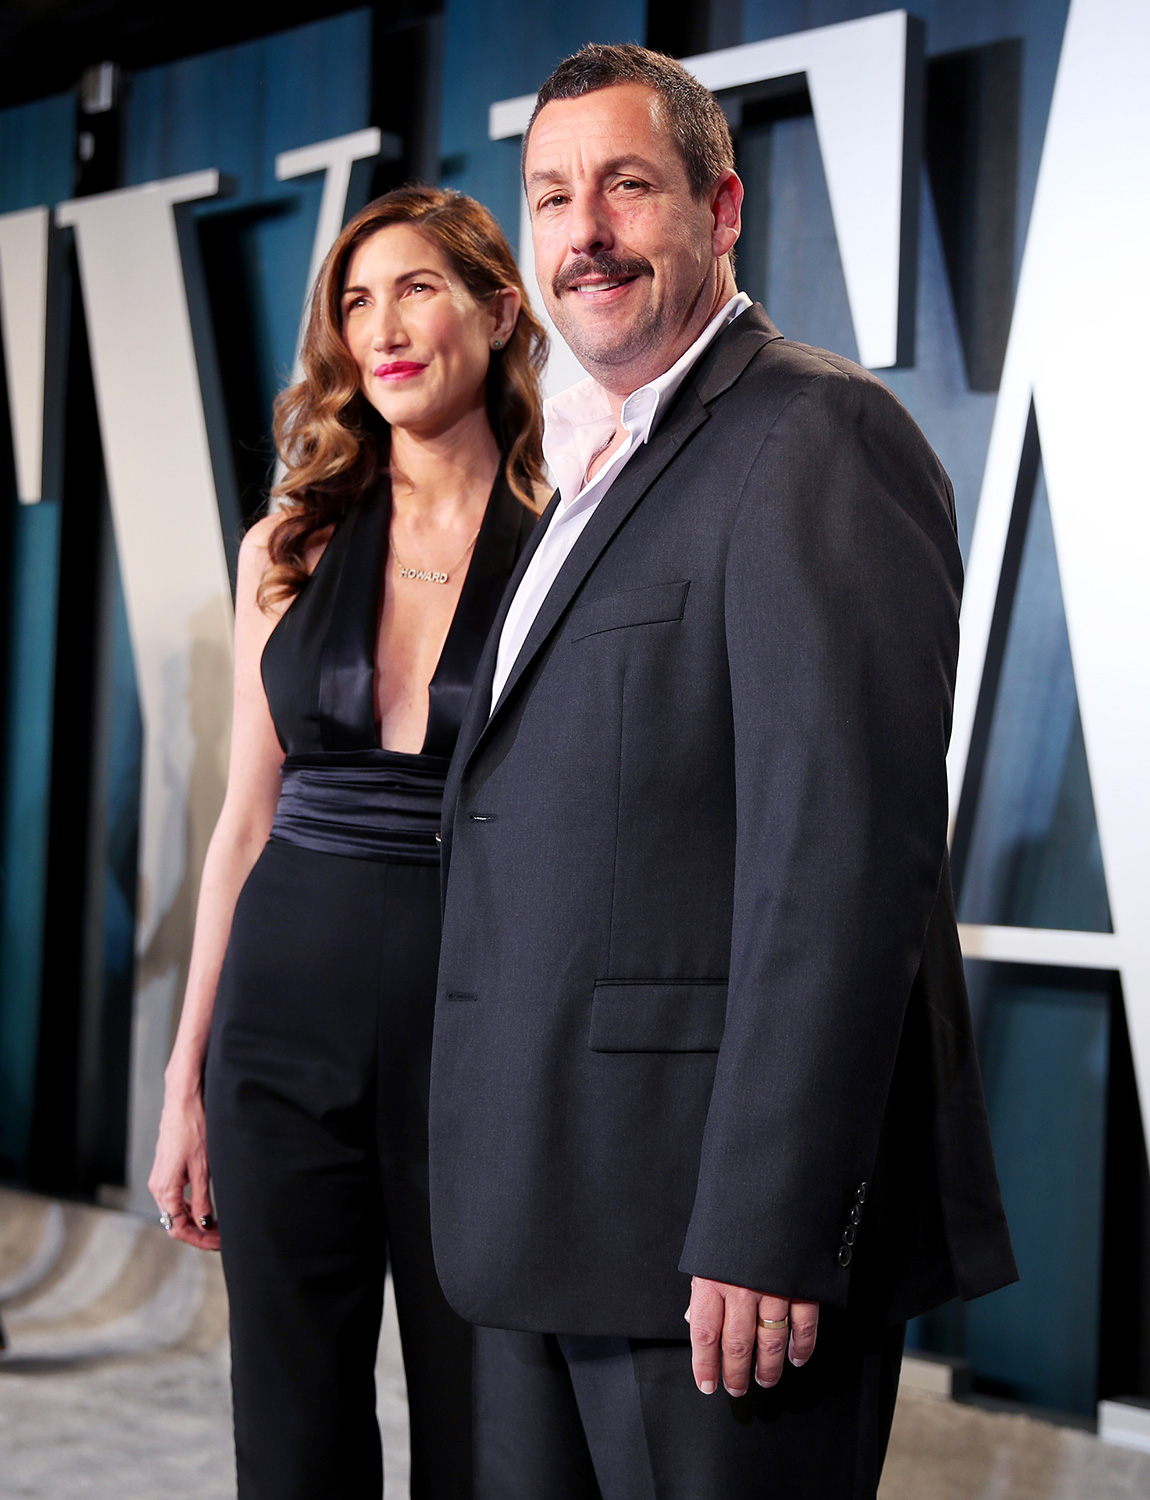 Jackie Sandler and Adam Sandler attend the 2020 Vanity Fair Oscar Party hosted by Radhika Jones at Wallis Annenberg Center for the Performing Arts on February 09, 2020 in Beverly Hills, California